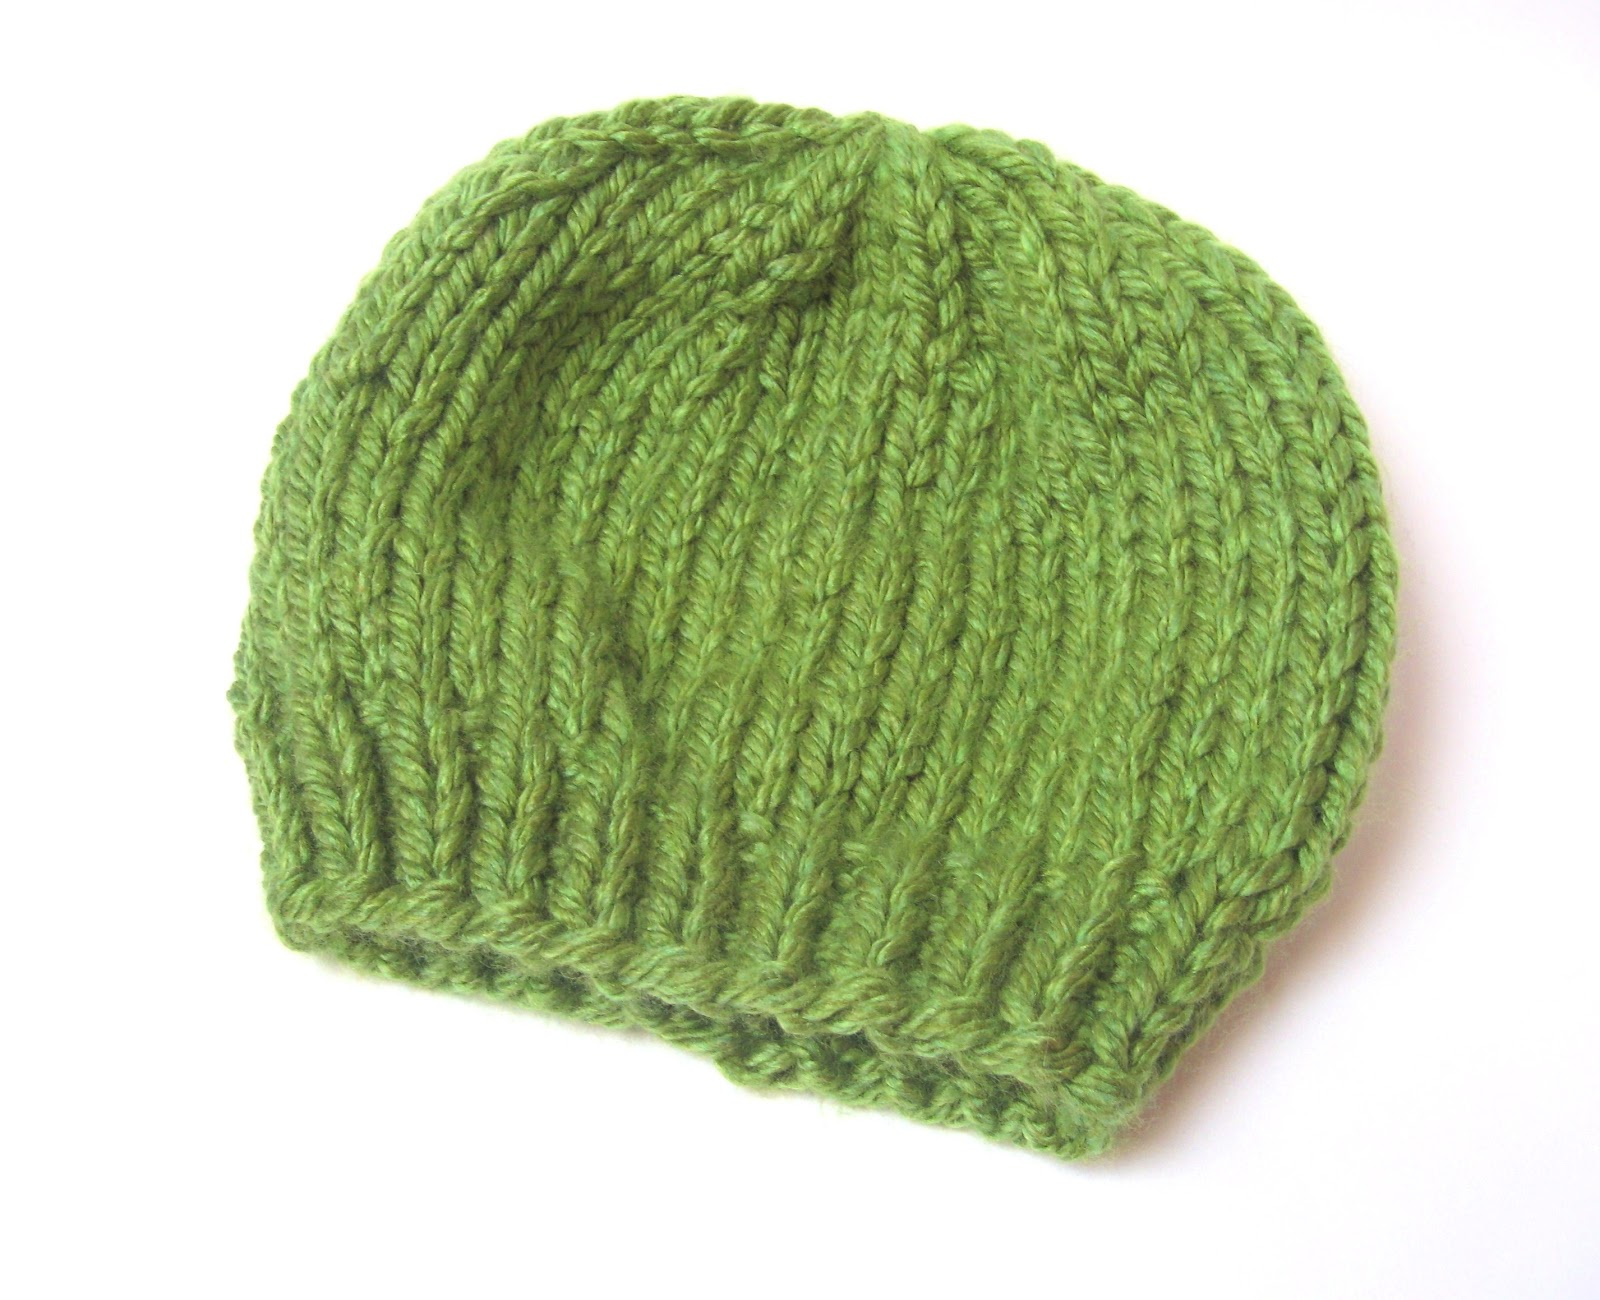 Simple Knitting Patterns : ... sass handknits: Free Knitting Pattern: Easy Chunky Knit Beanie Hat